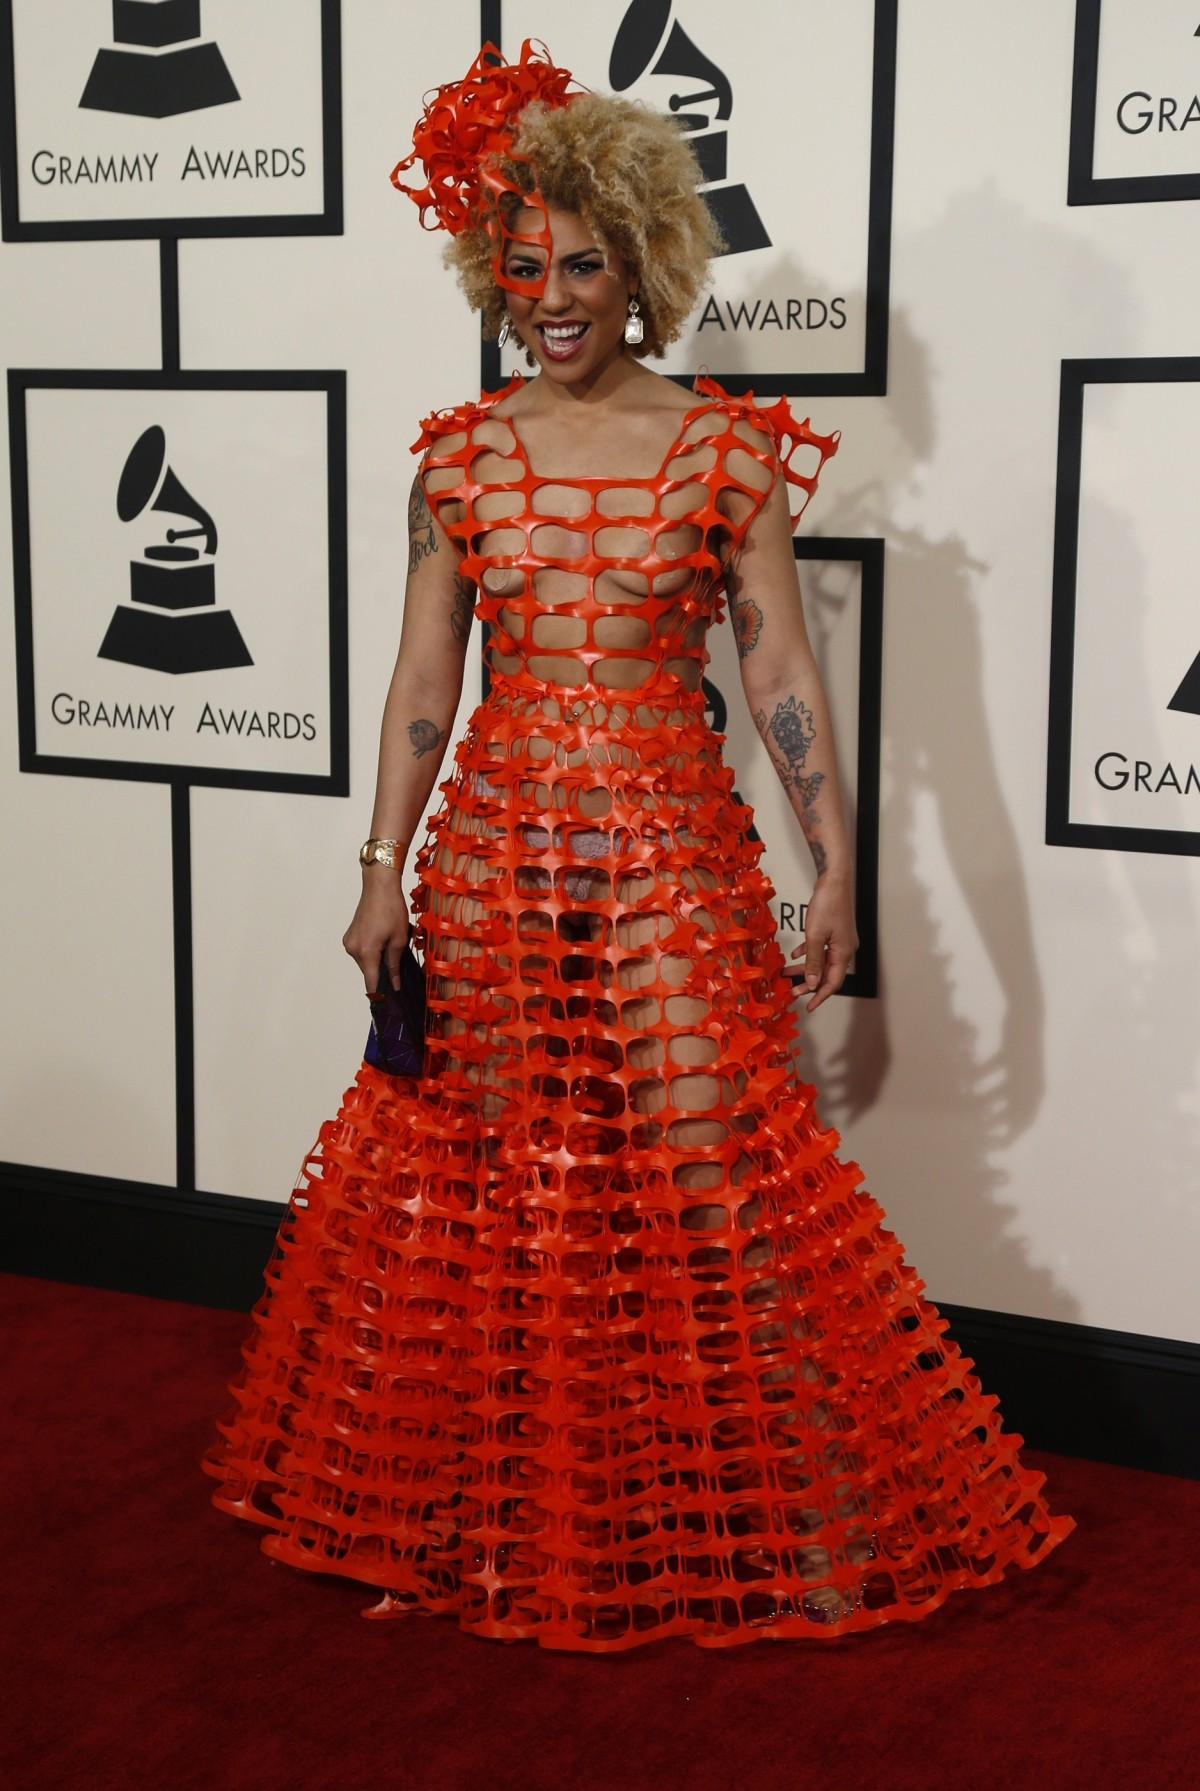 Joy Villa at Grammy Awards 2015